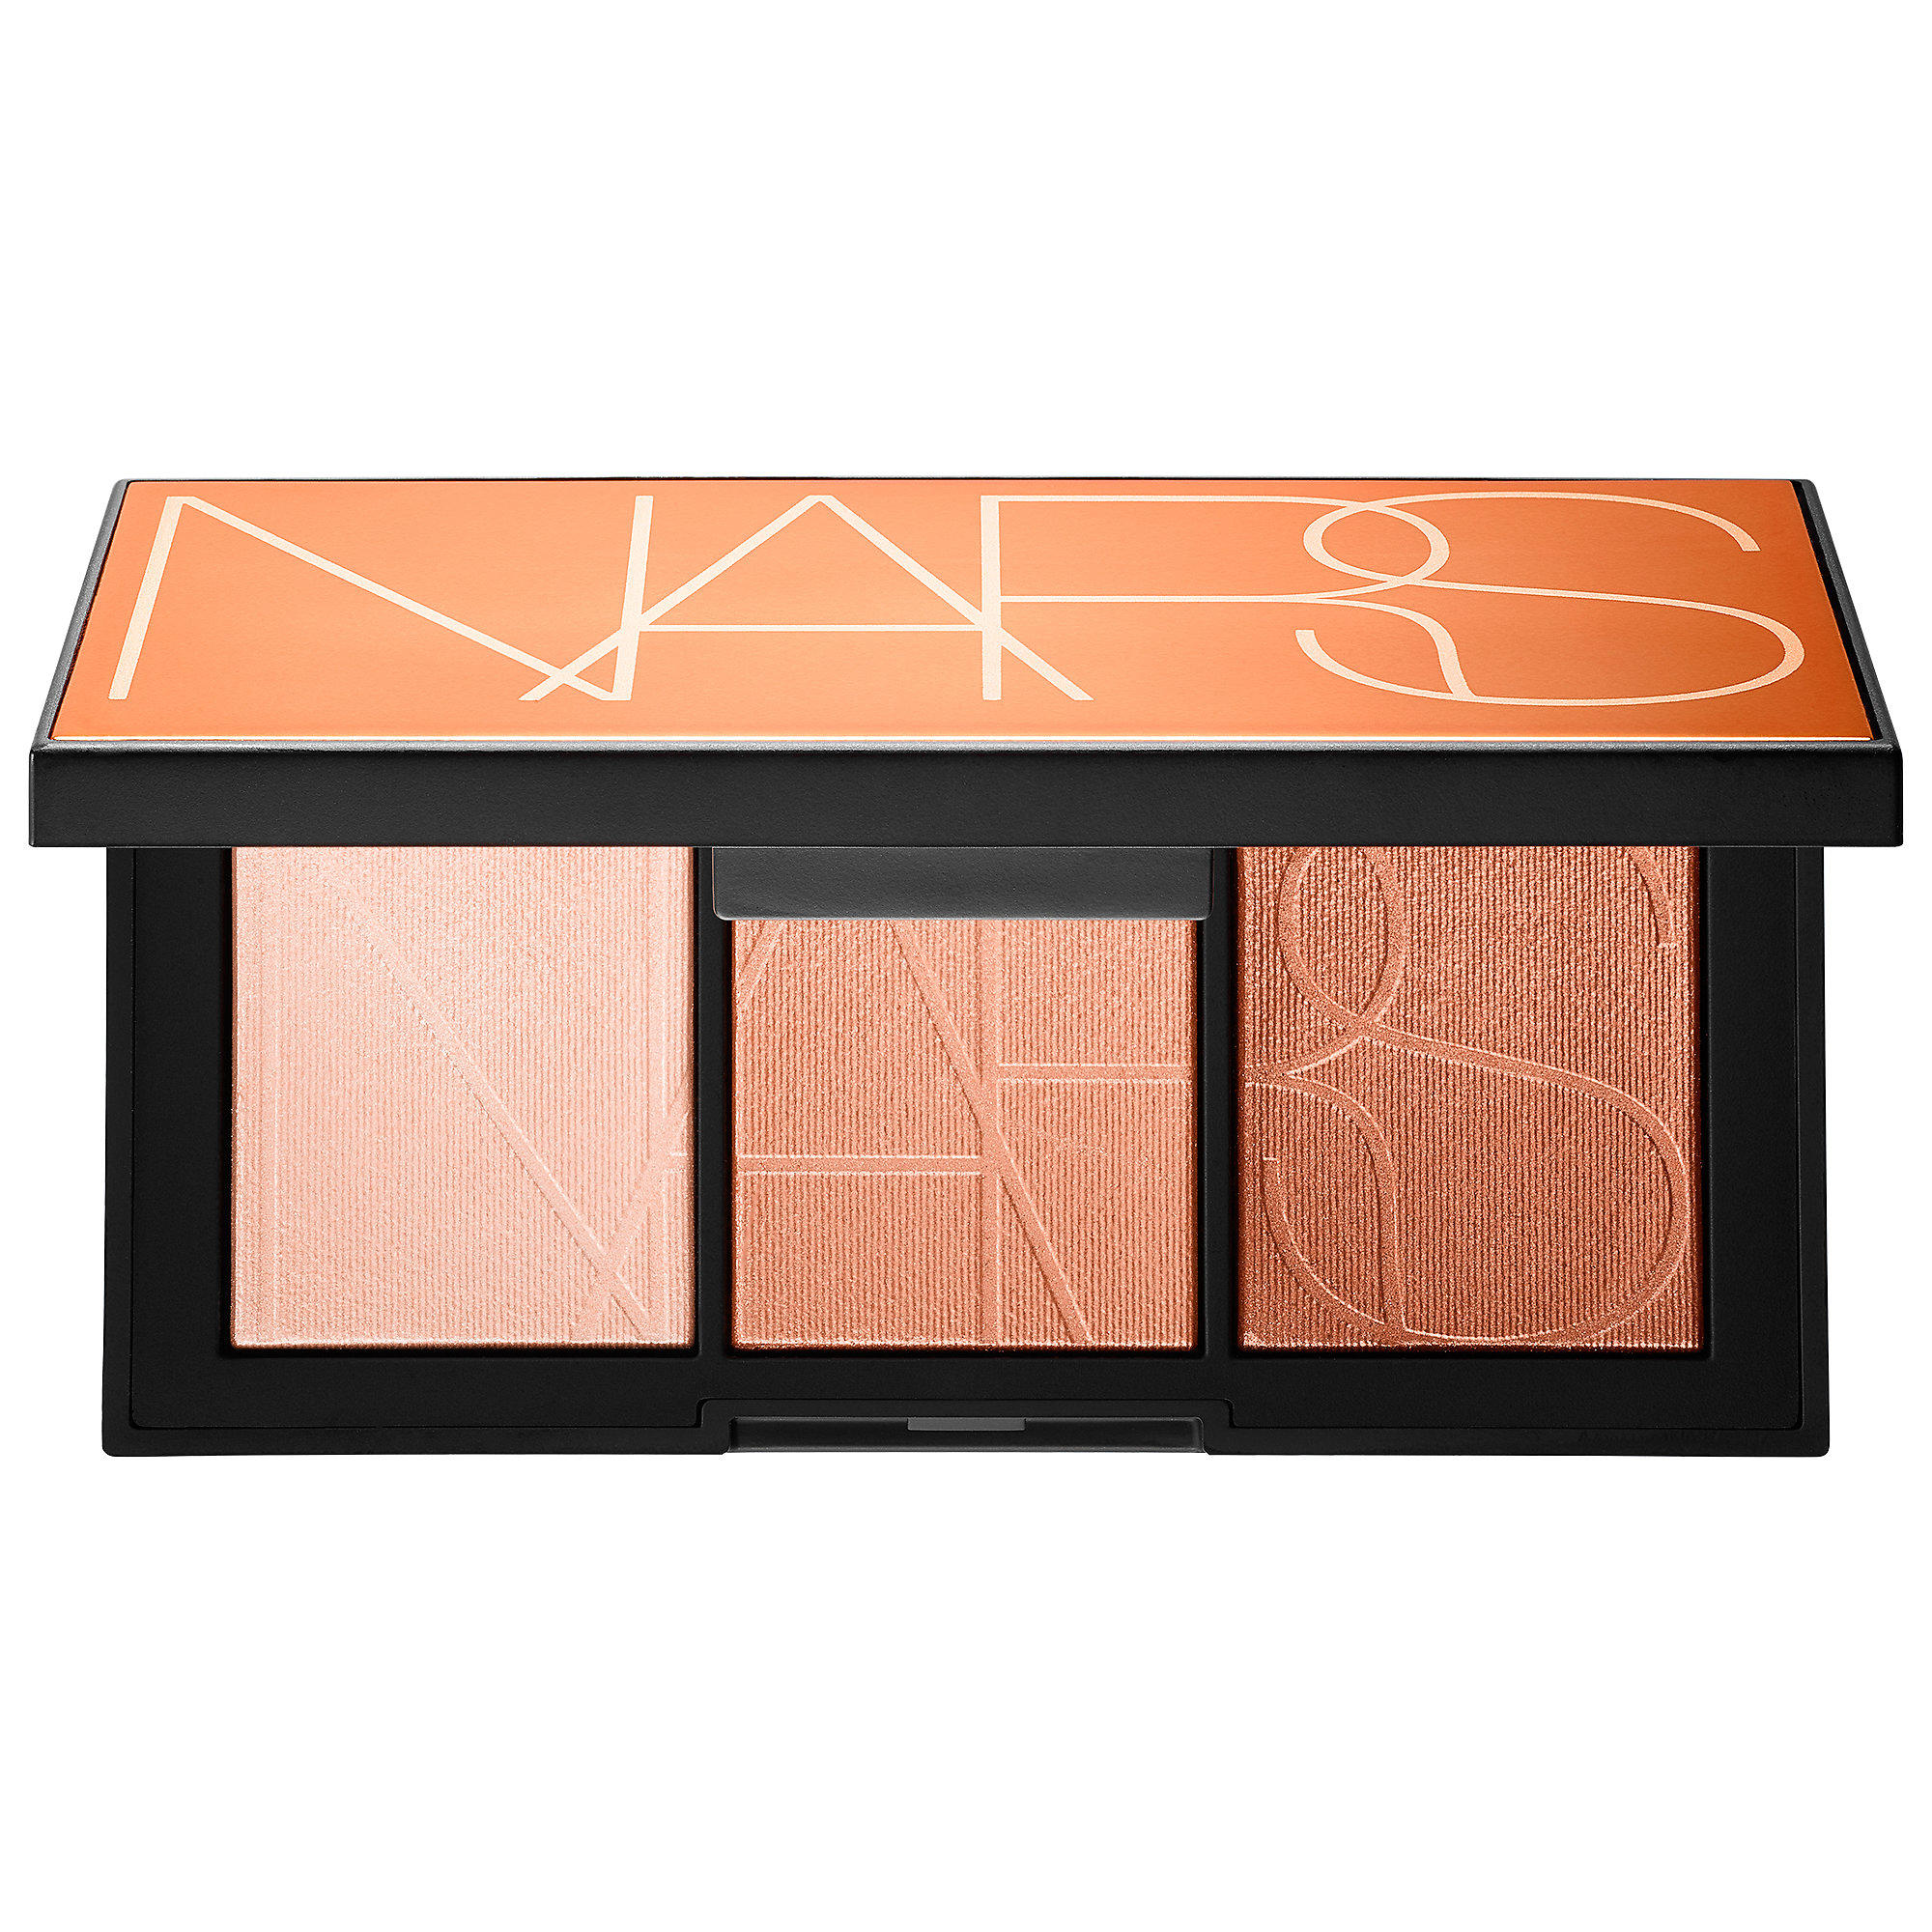 Nars Highlighter Palette Banc De Sable Glambot Com